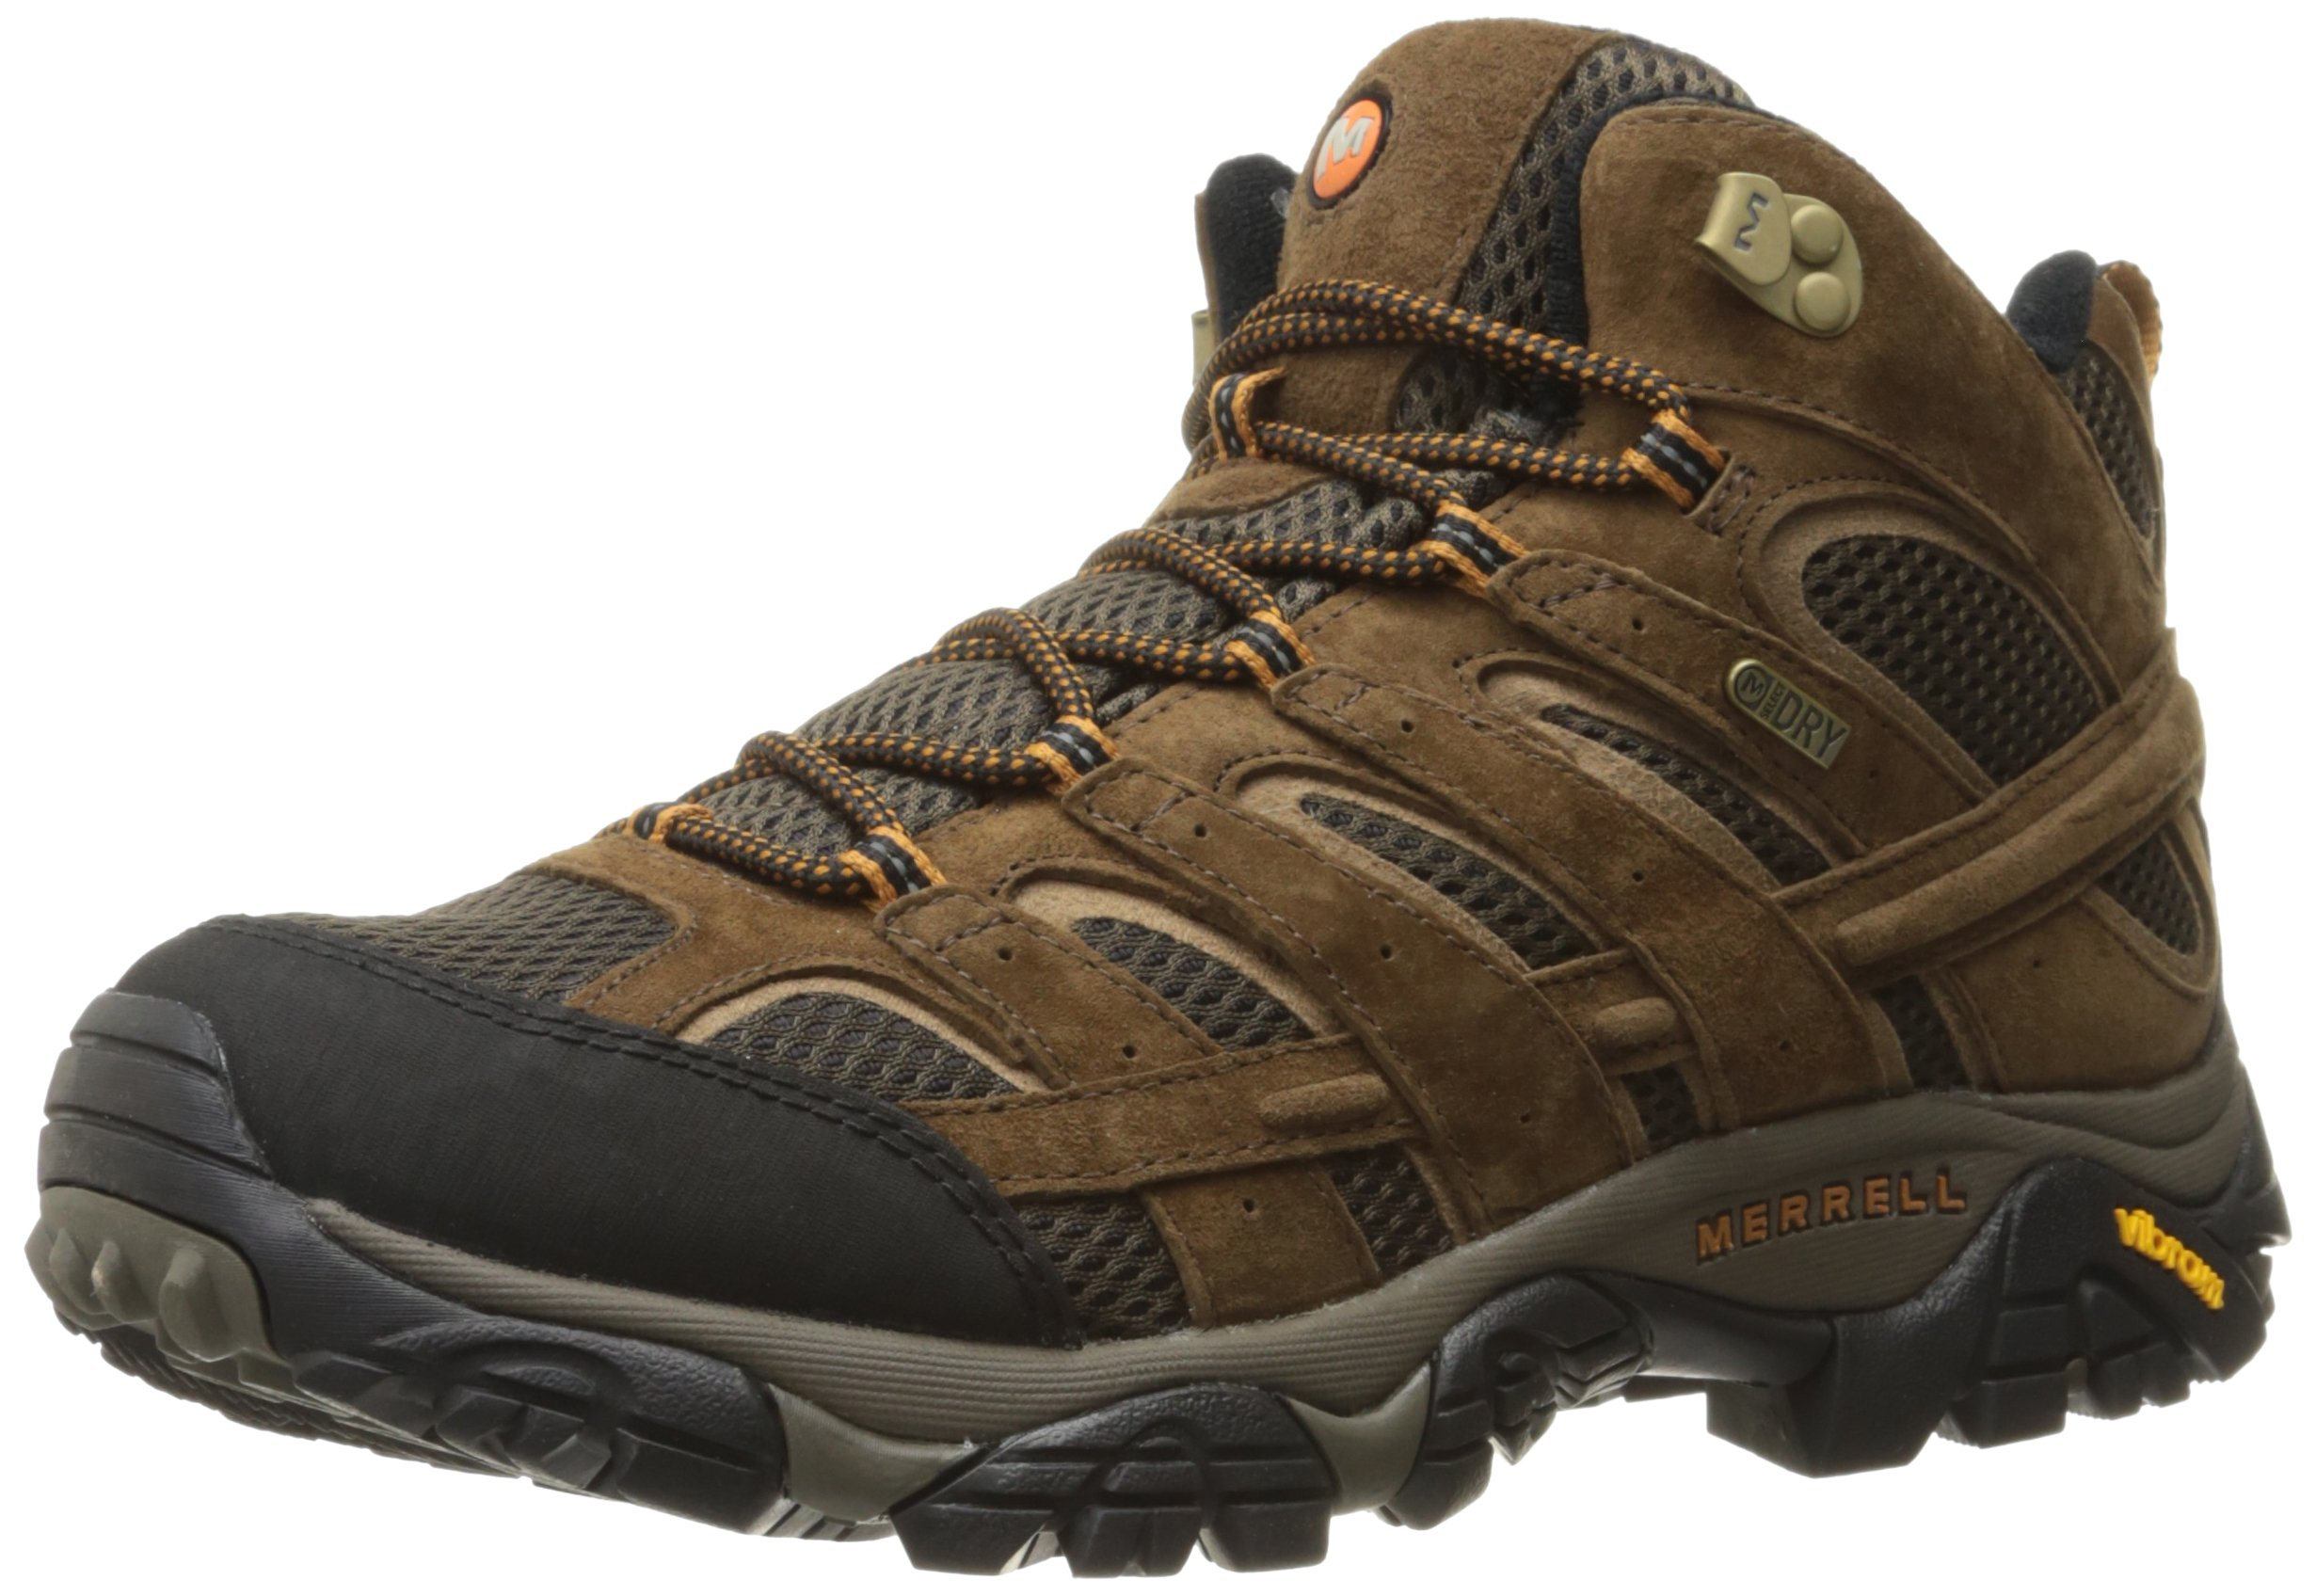 green shoes mid texapore jack flashing boots hiking comfortable waterproof wolfskin hike comforter men vojo most